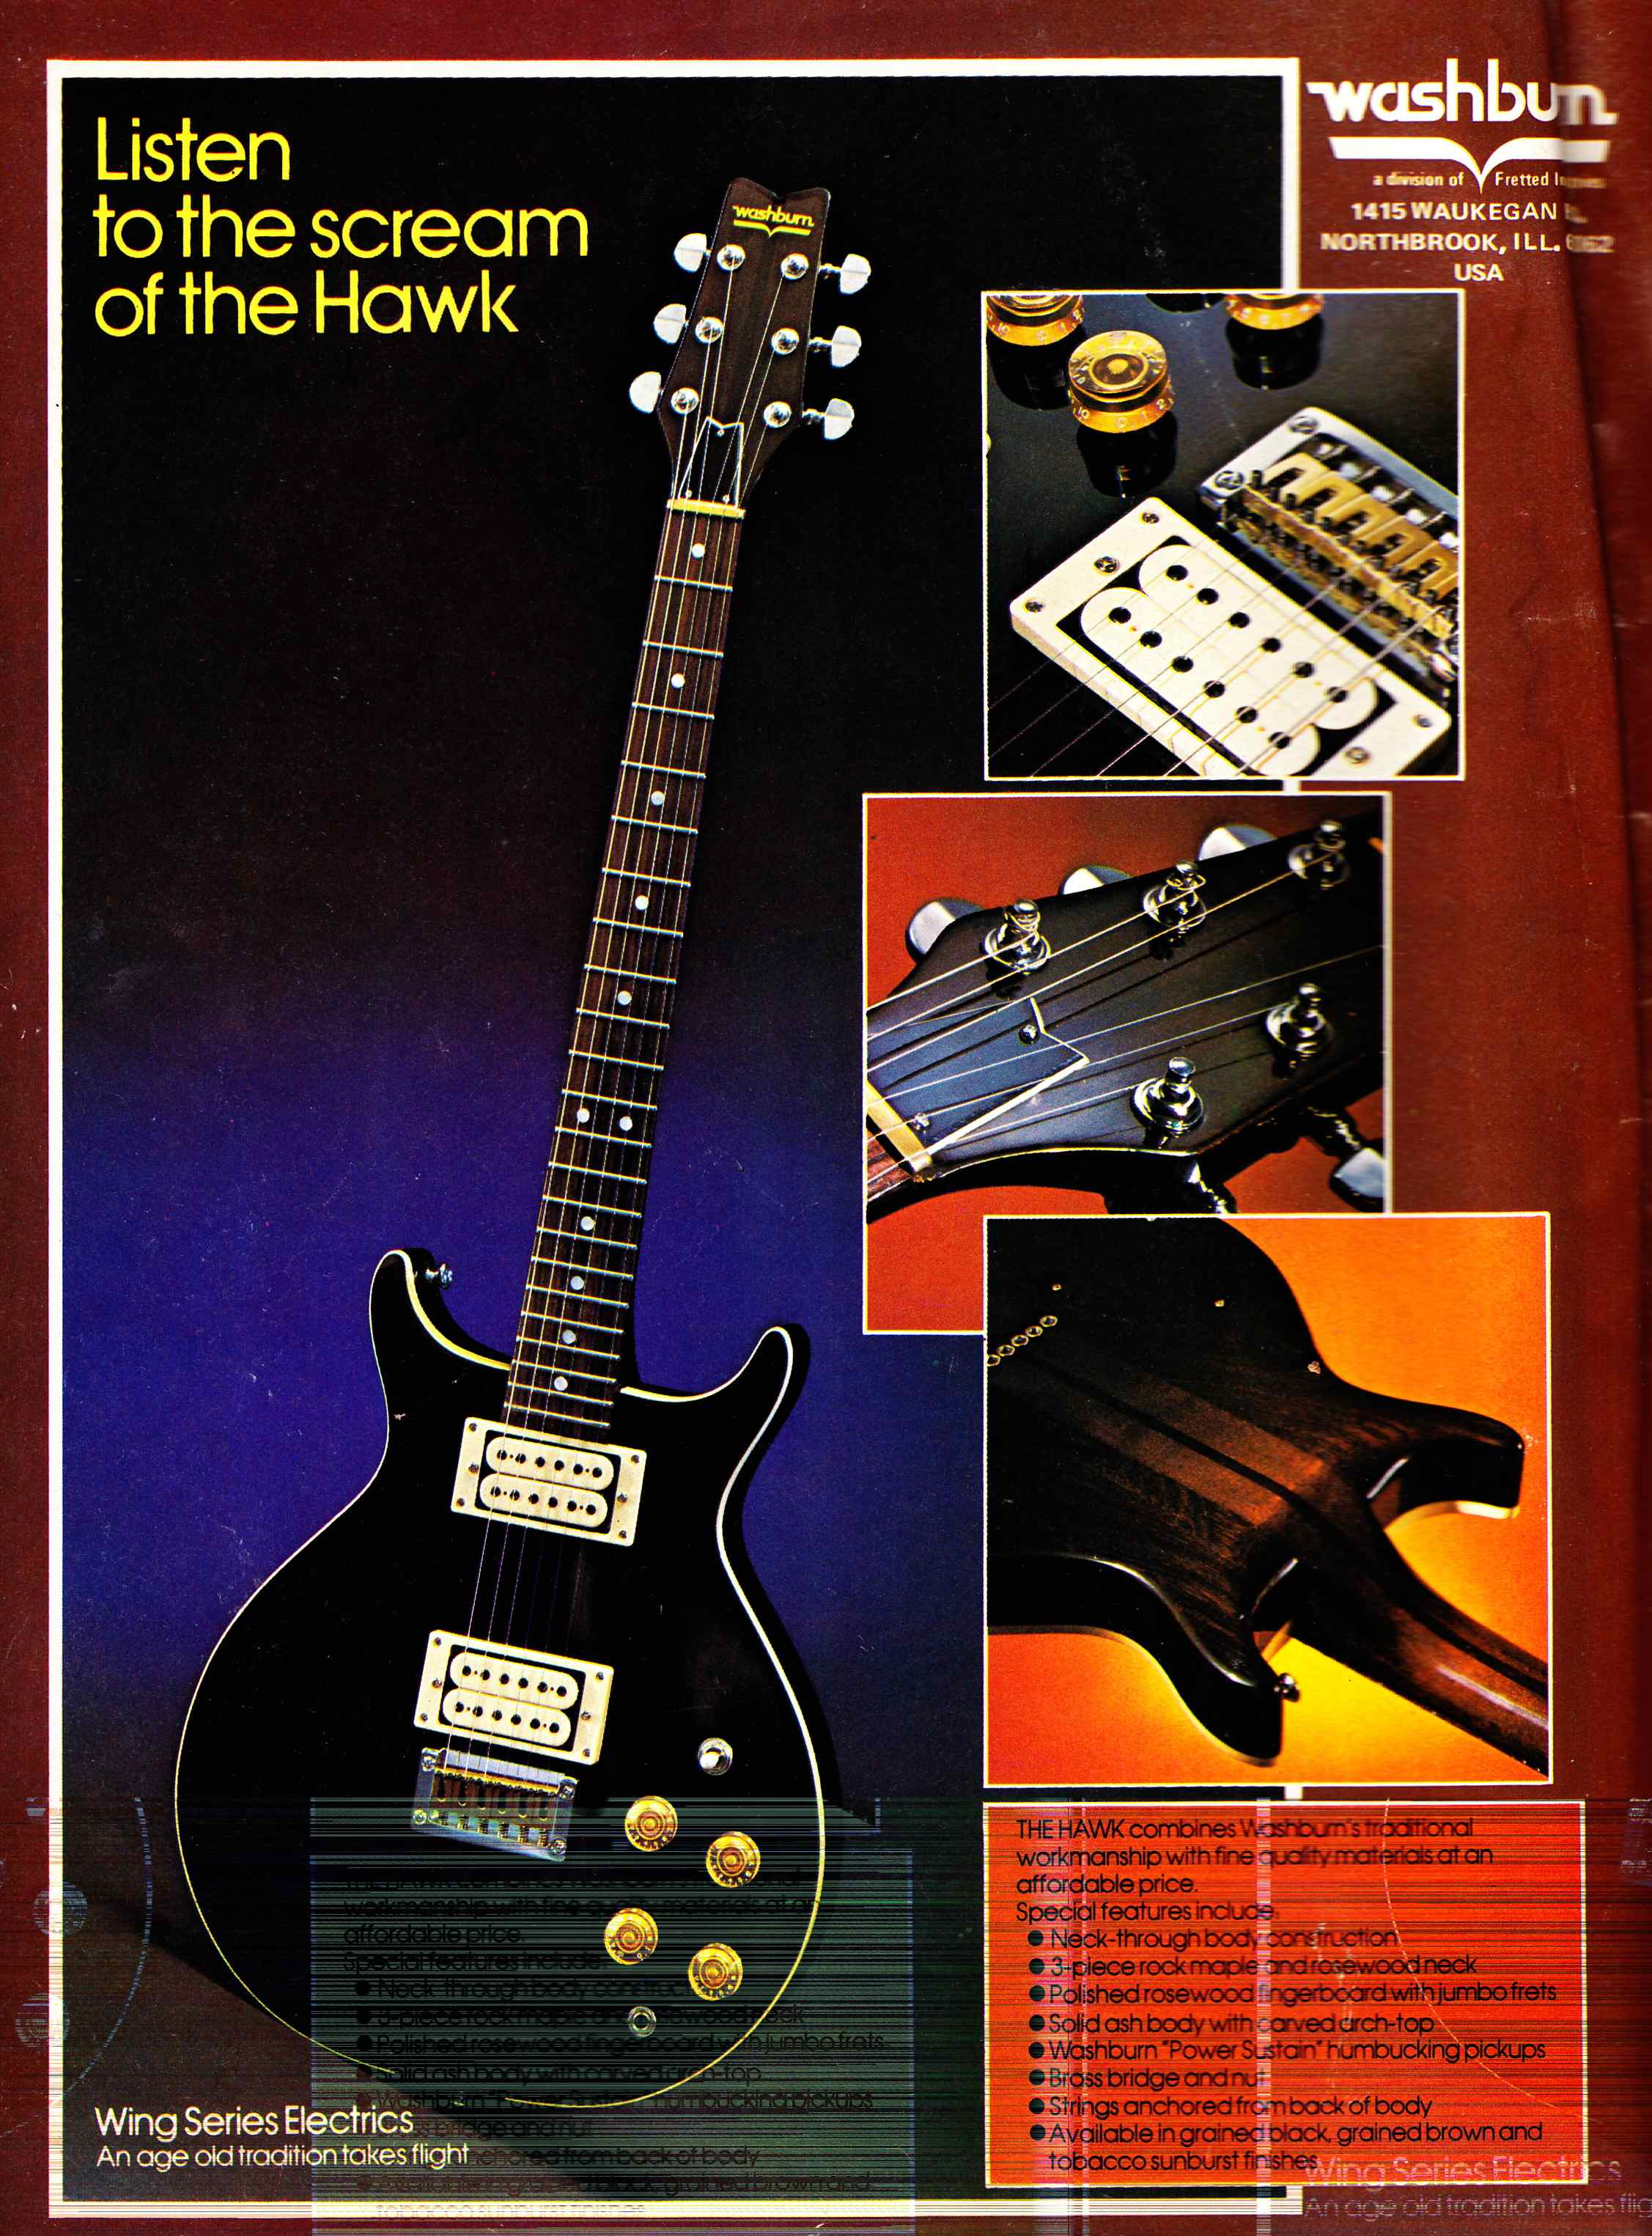 Pawnshop Classics Off Brand Japanese Guitars Of The Late 70s Vantage Guitar Wiring Diagram